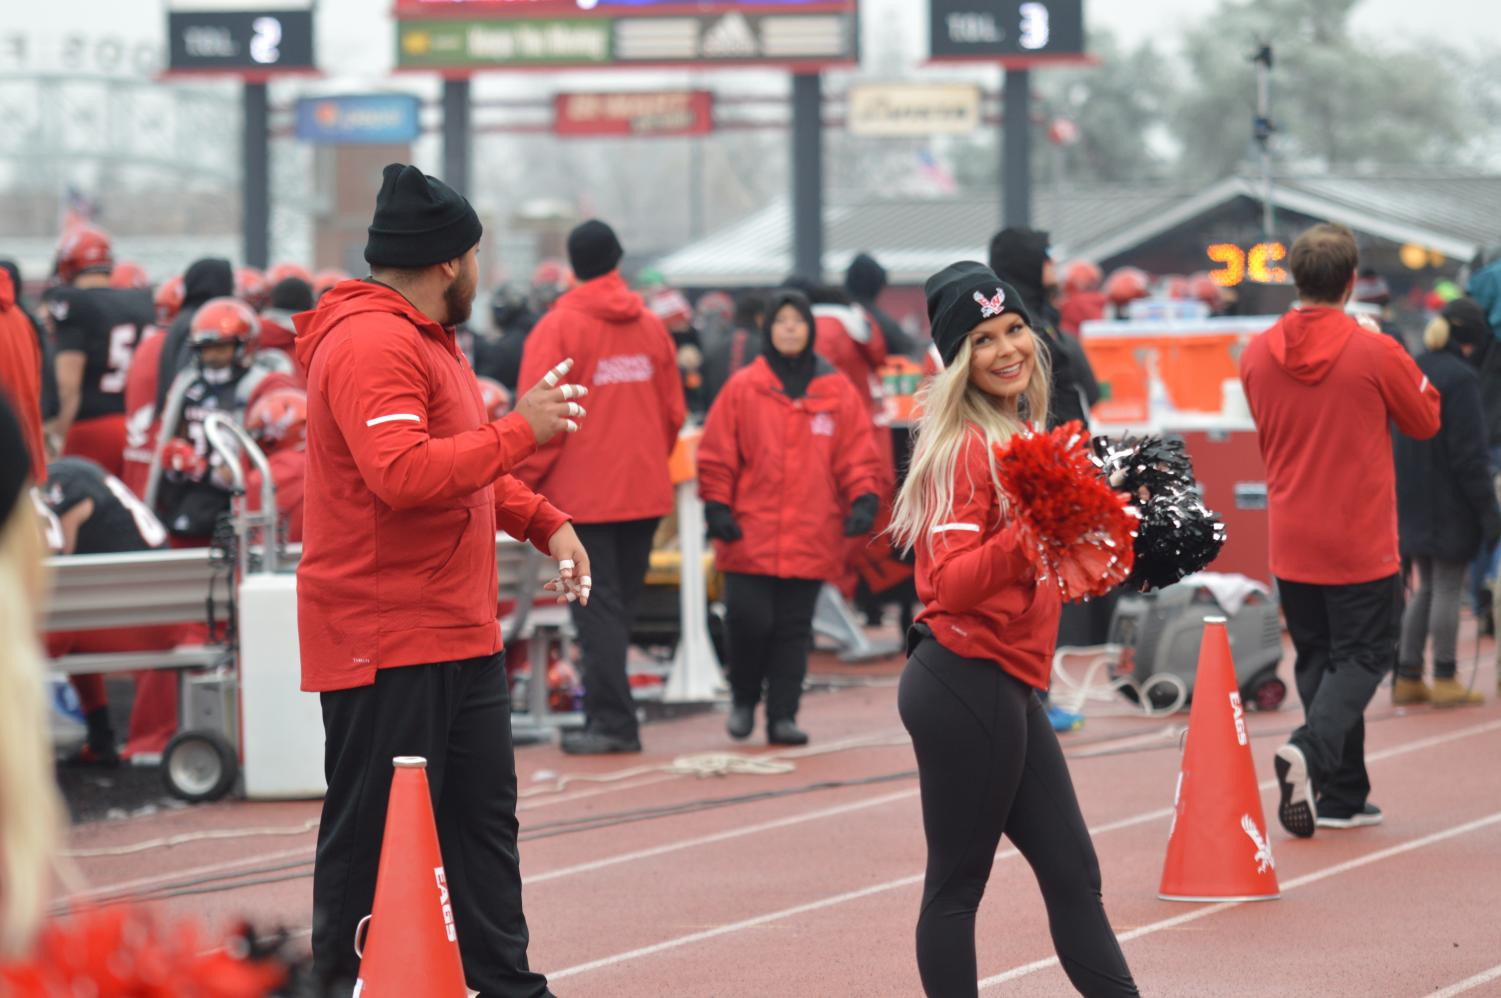 David Valdovinos and Brittany Brattin of the cheer club face the crowd at the football game against UC Davis on Nov. 10. Brattin has been a member of the club for three years.